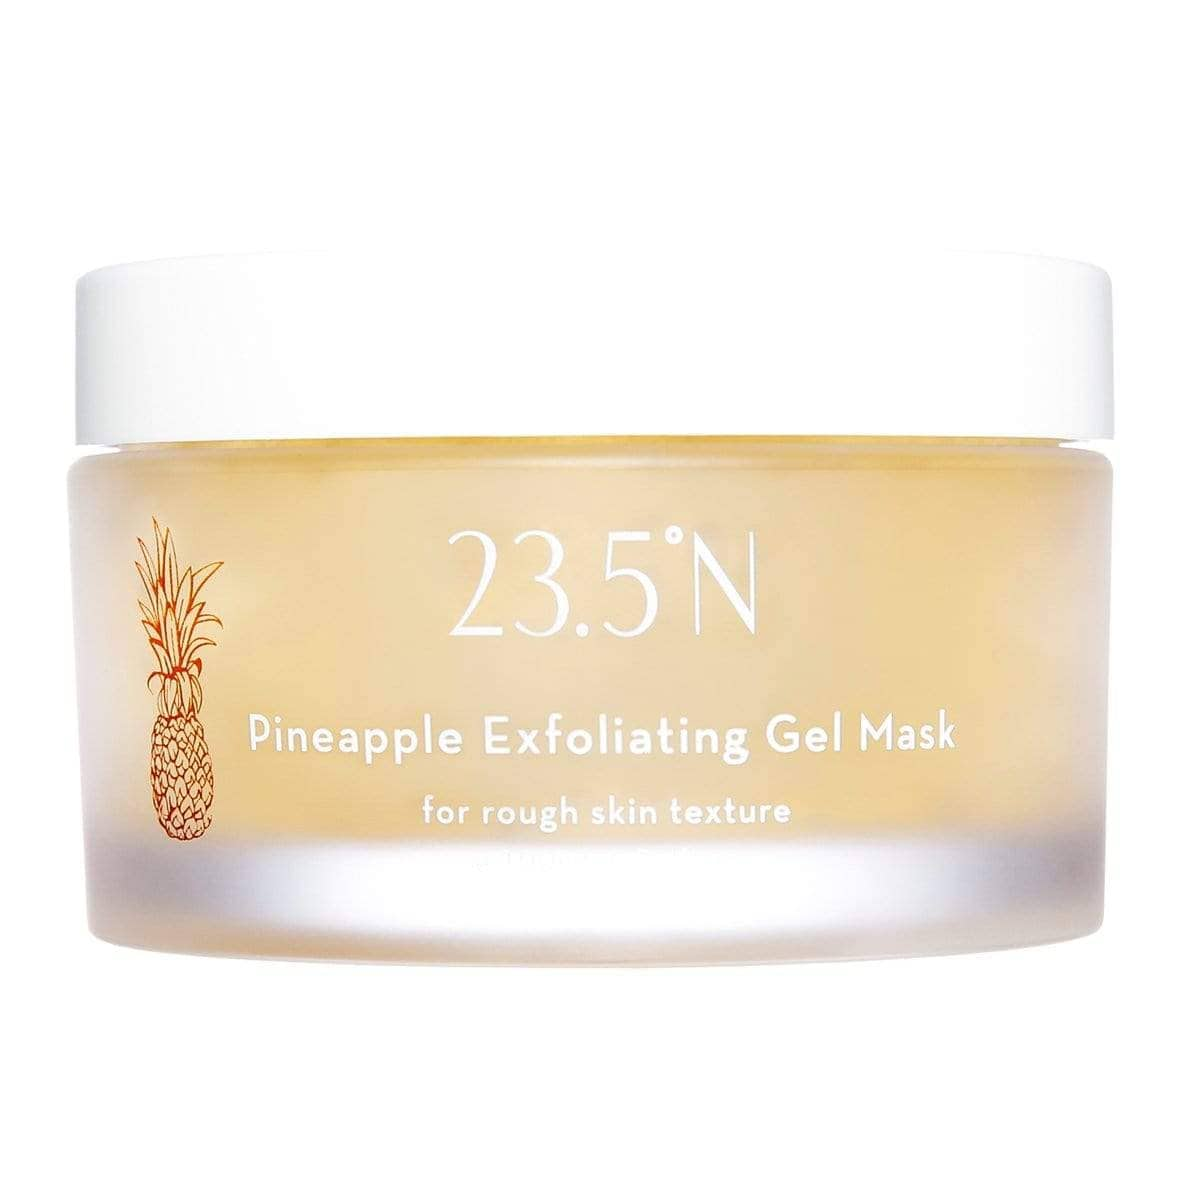 23.5N Pineapple Exfoliating Gel Mask